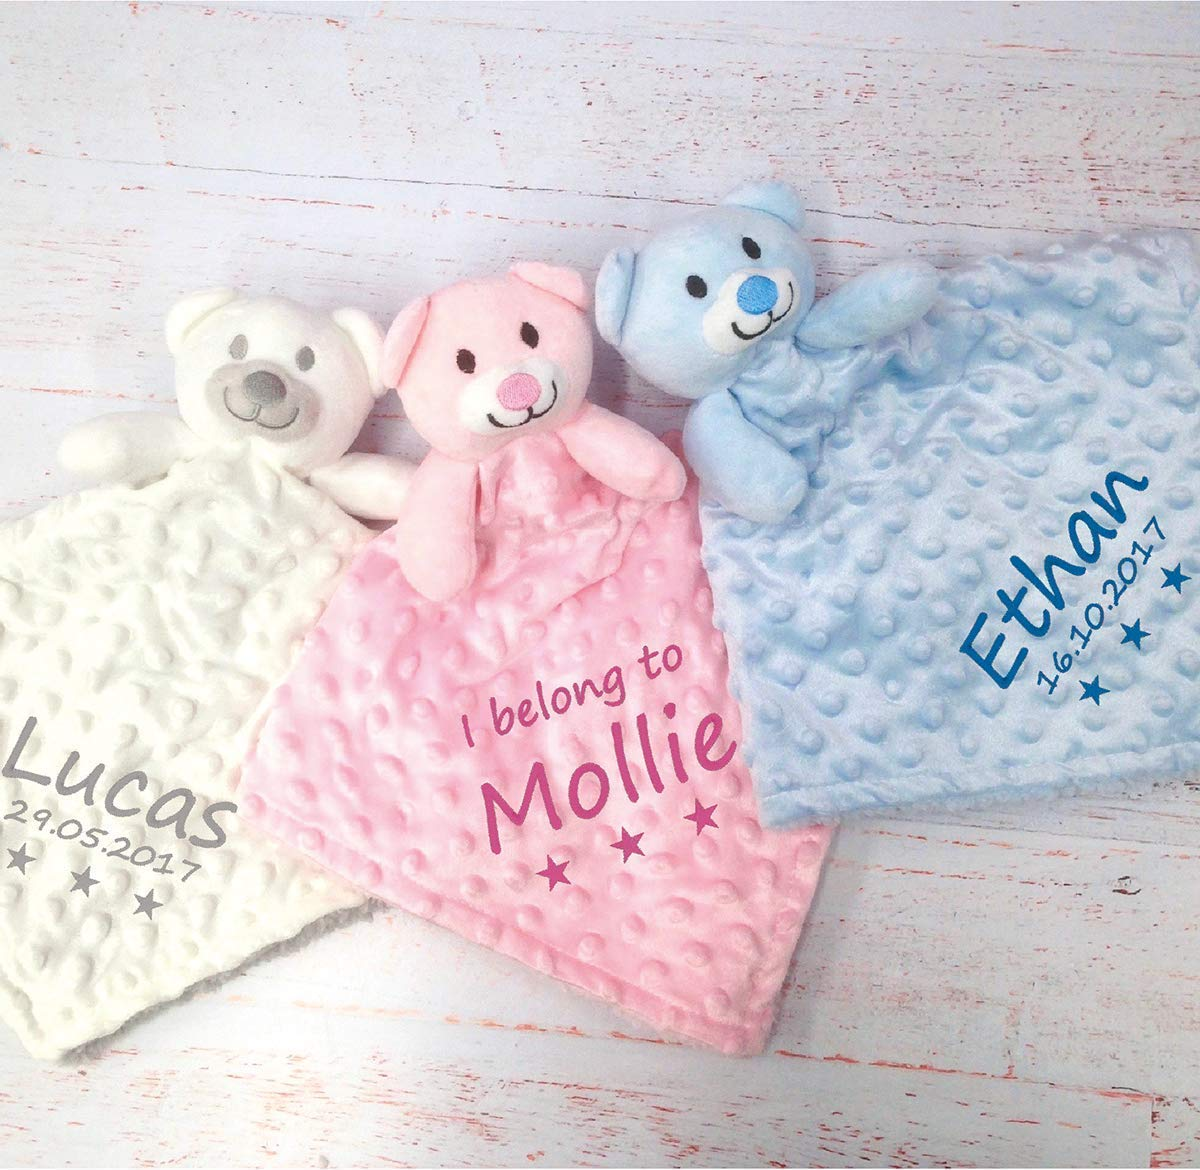 61b56887c3958 Personalised baby comforters Teddy bear blanket personalised gifts for baby  girl personalised gifts for baby boy